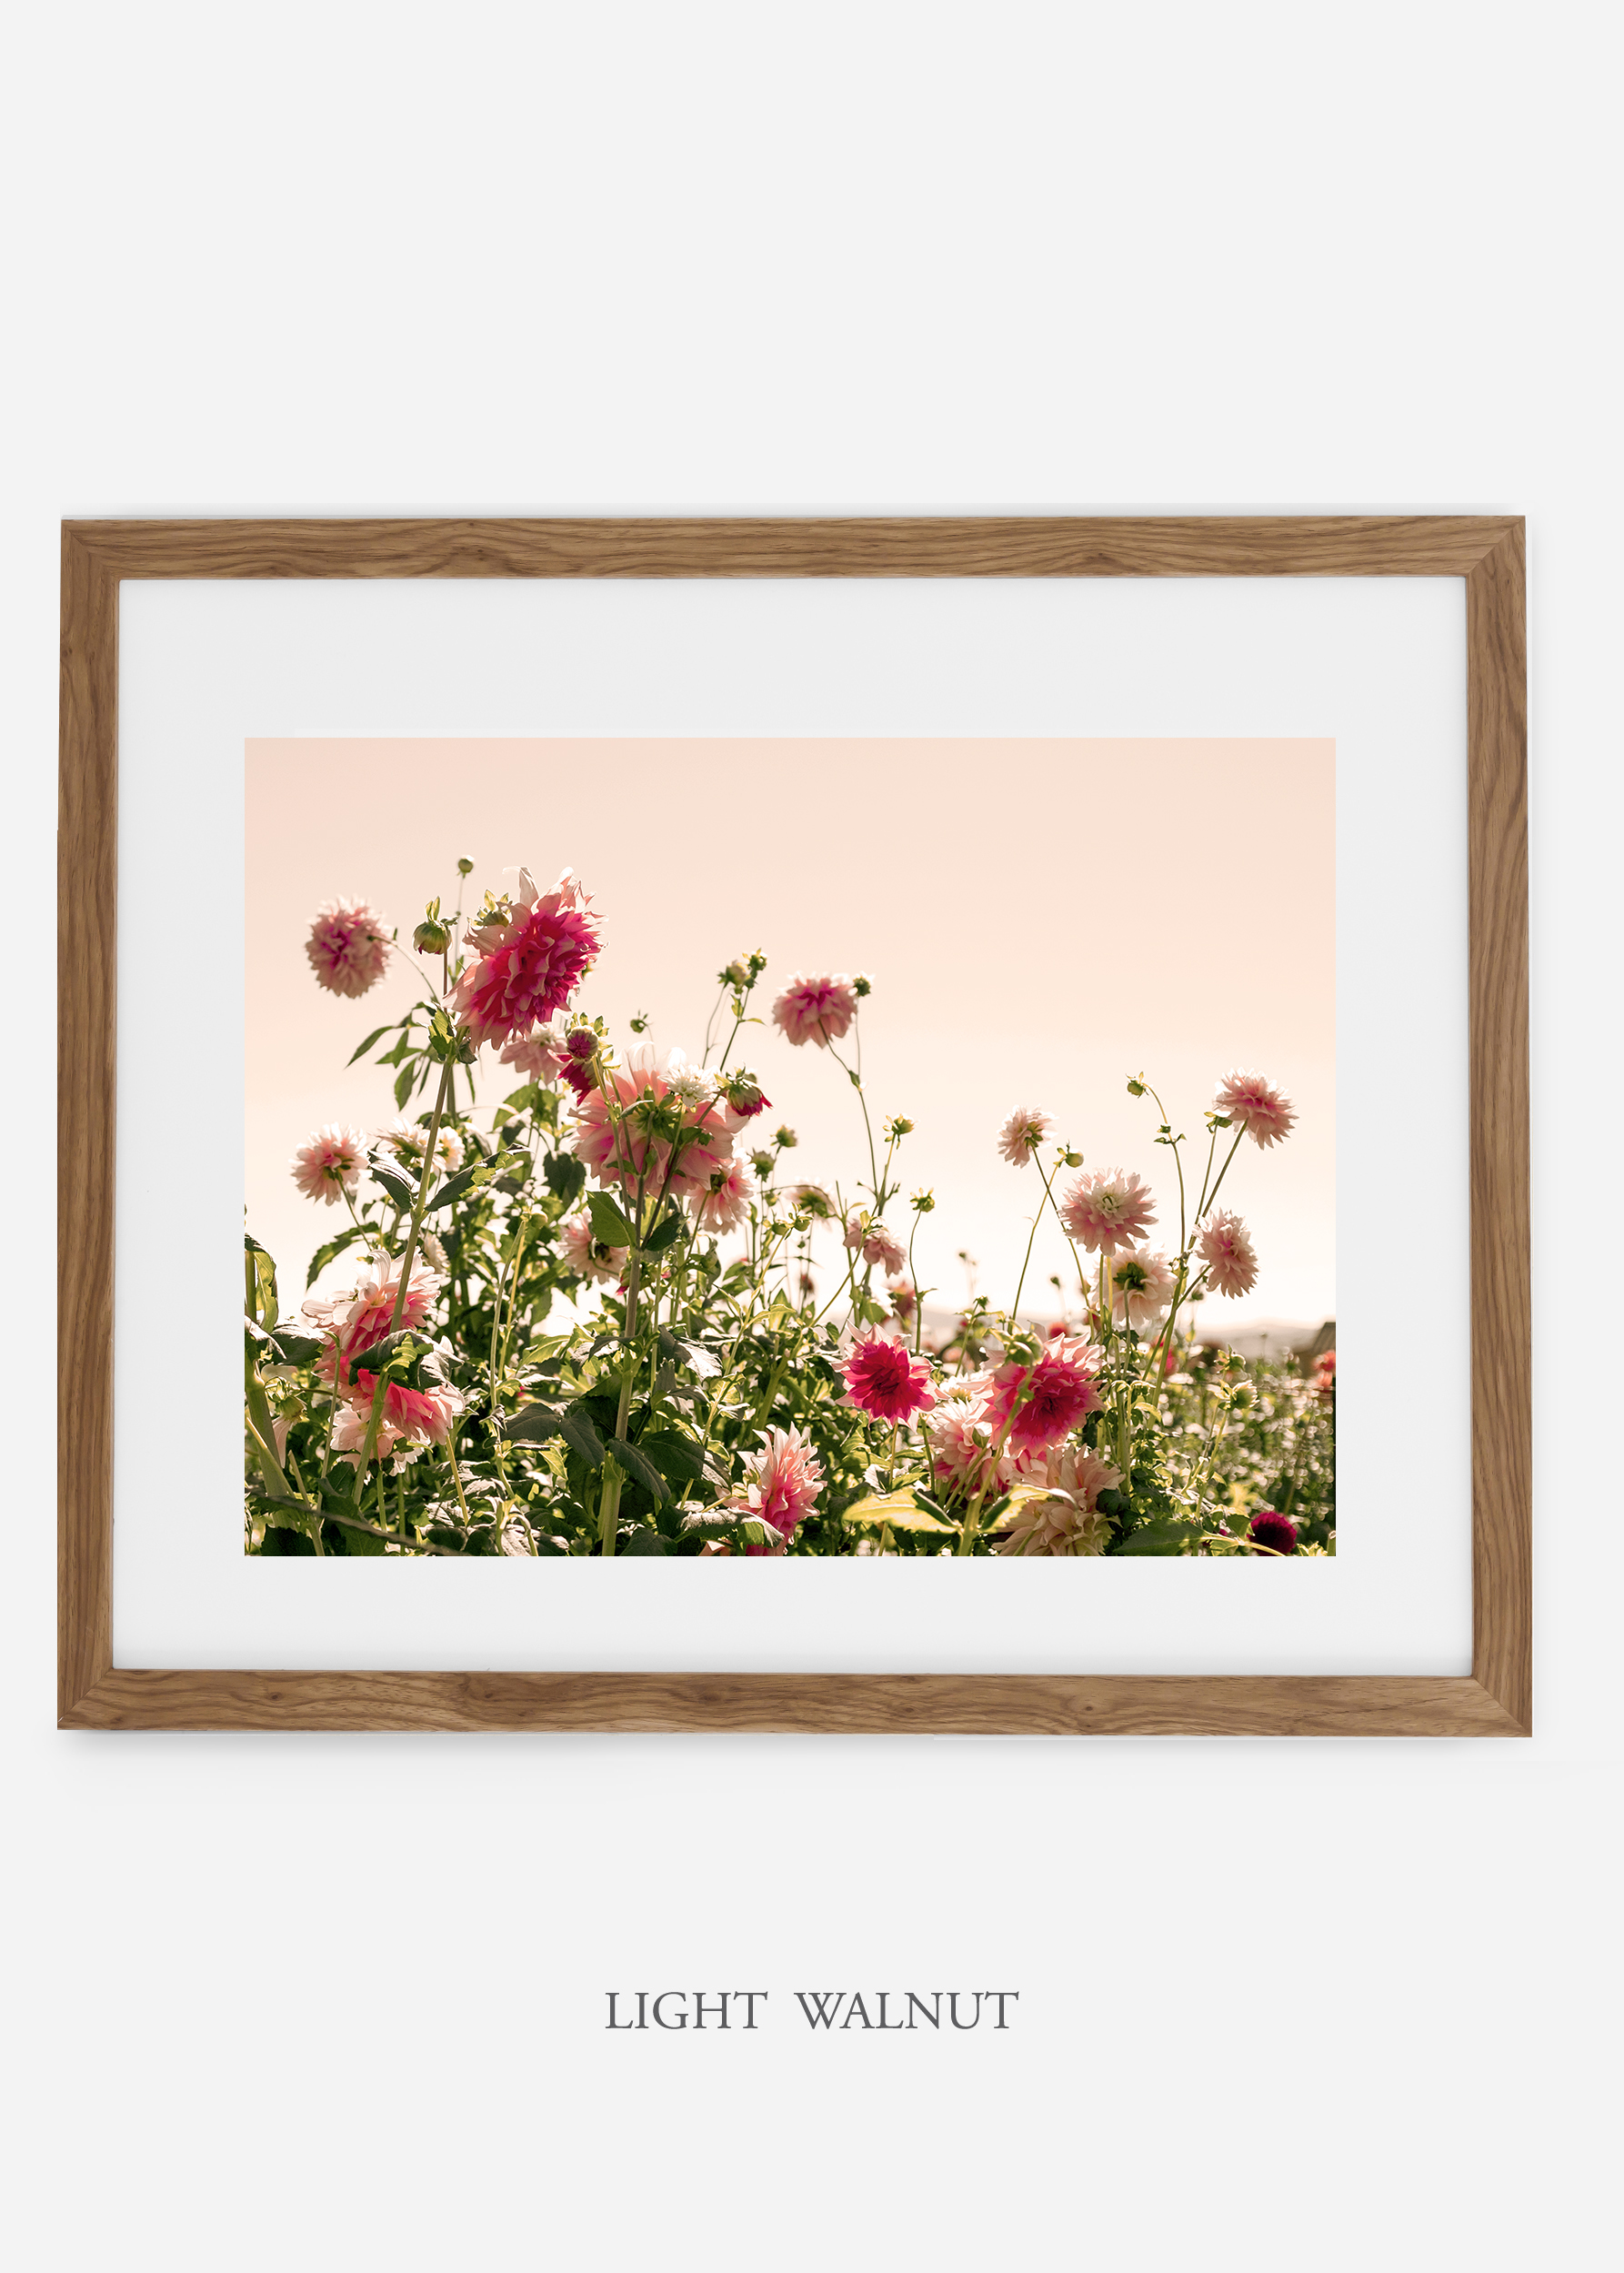 wilder-california-lightwalnutframe-dahlia-7-minimal-botanical-print-art-interior-design.jpg